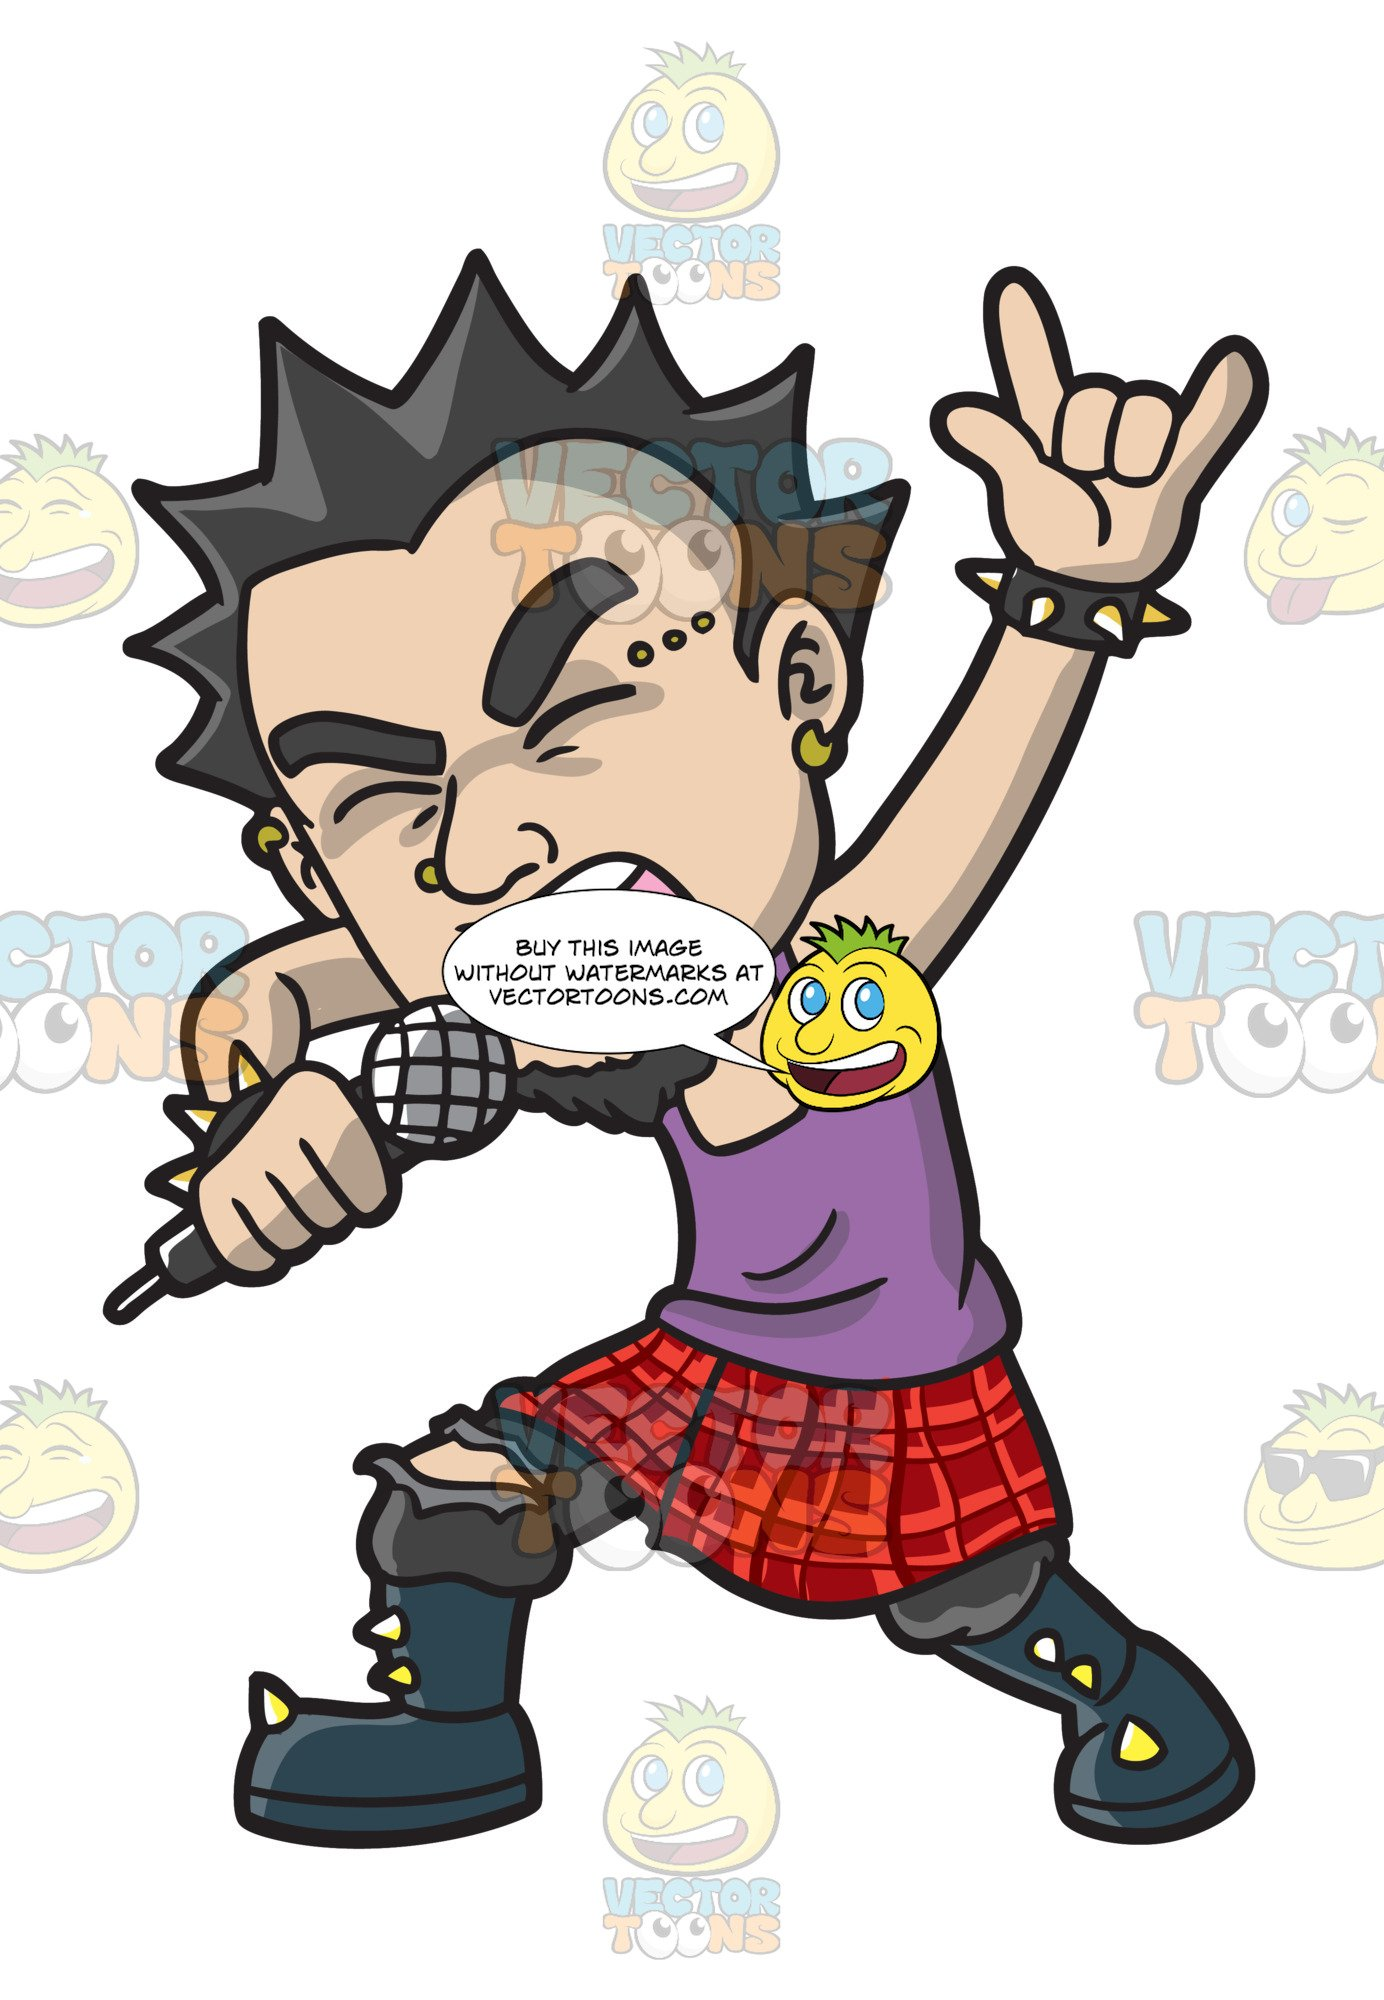 A Punk Rock Star Wearing A Kilt.